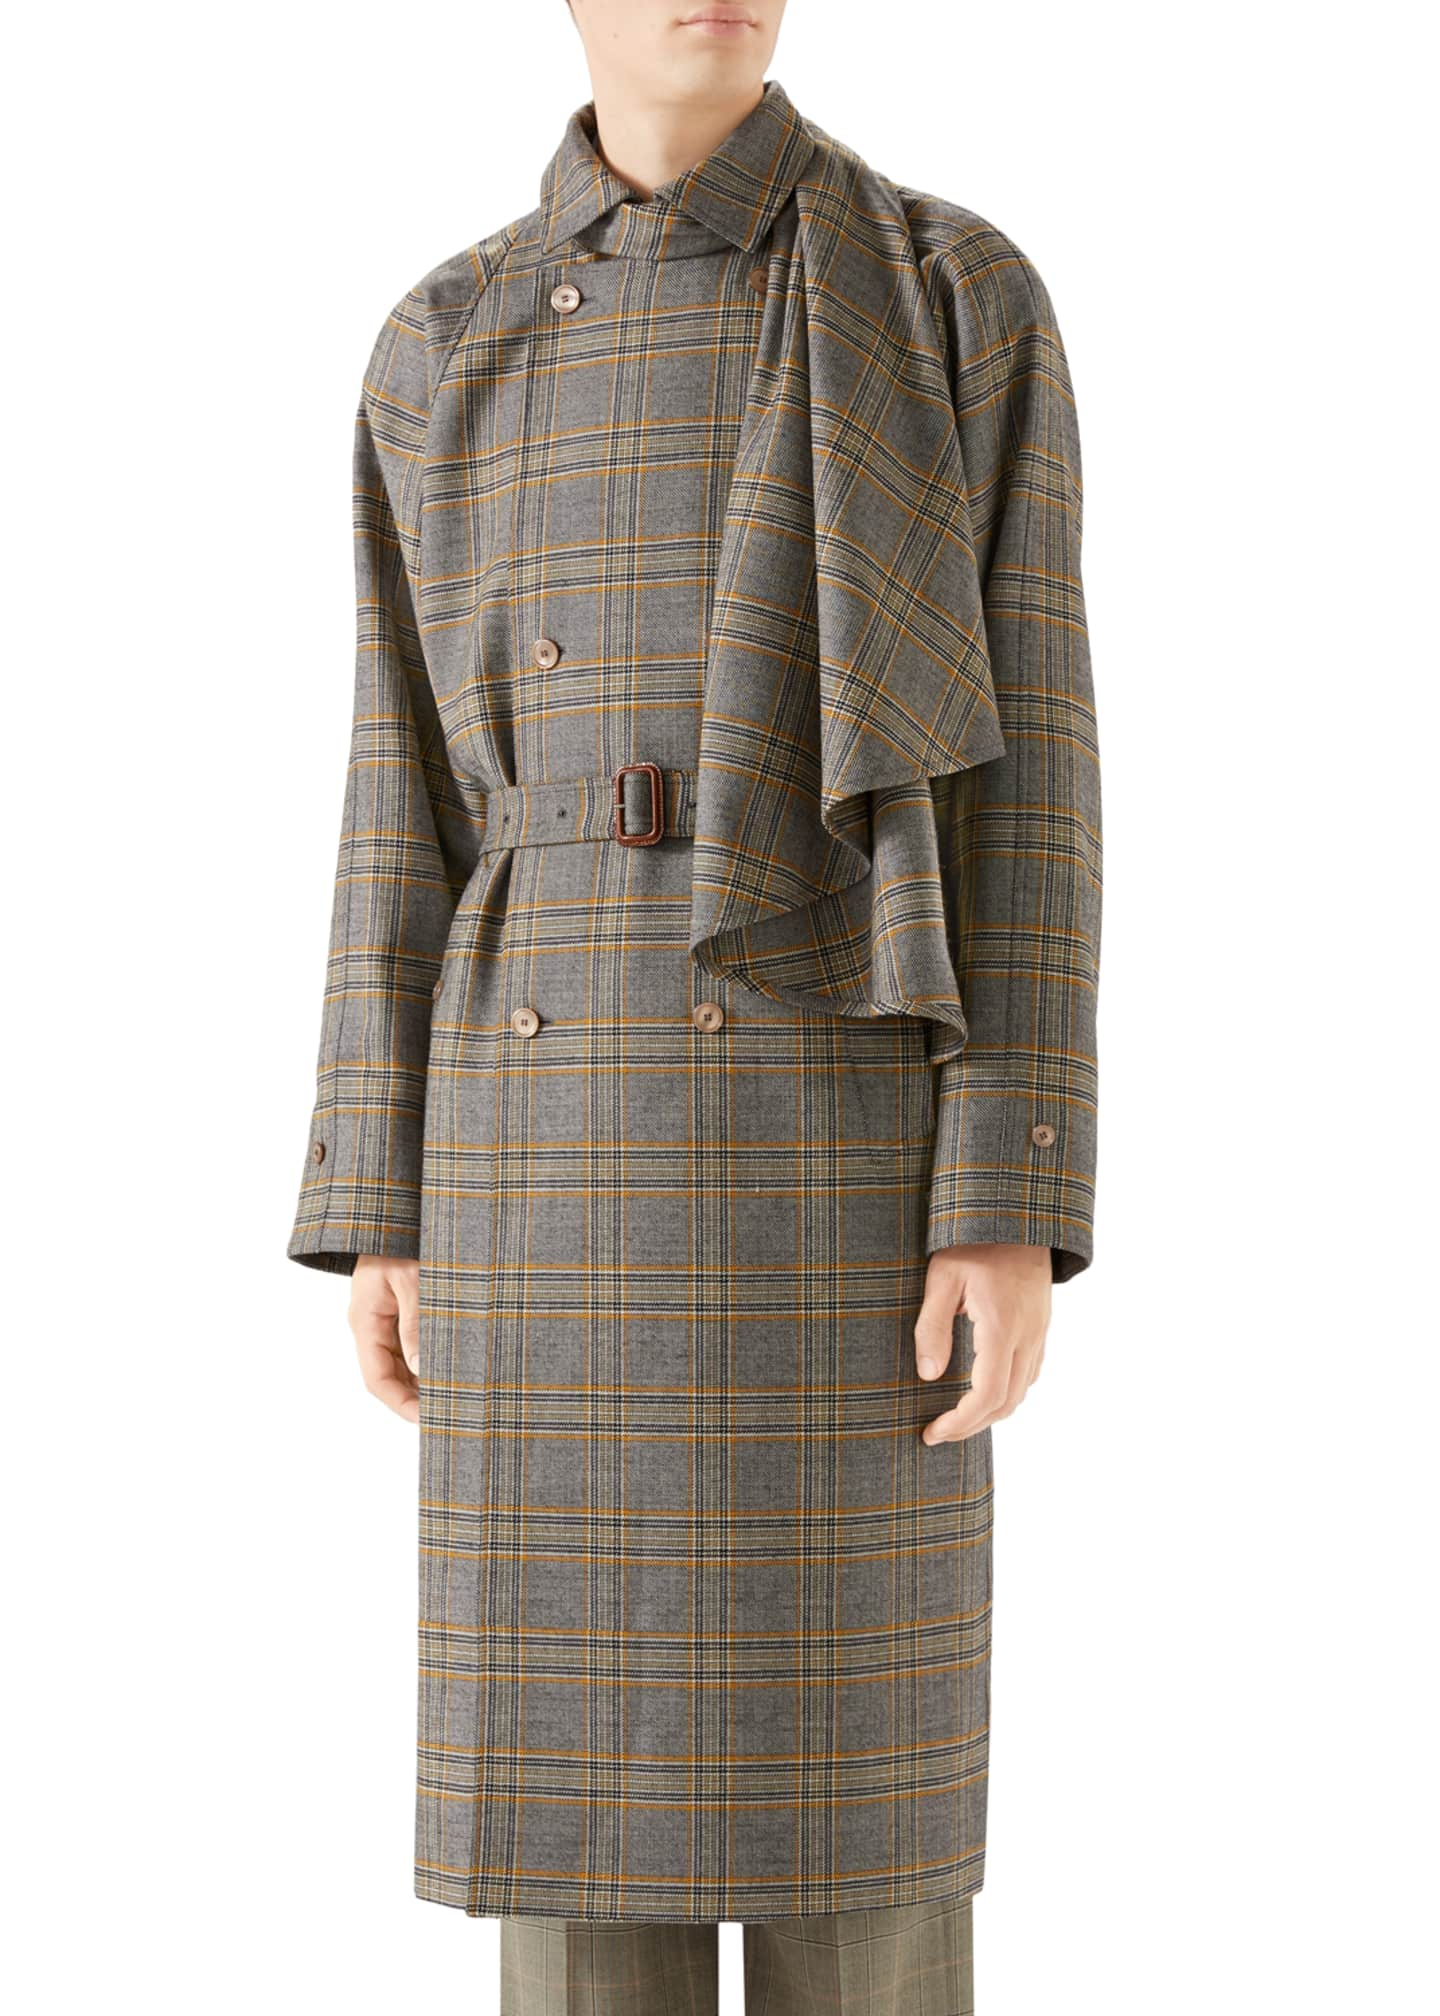 Gucci Men's Glen Plaid Overcoat w/ Removable Scarf